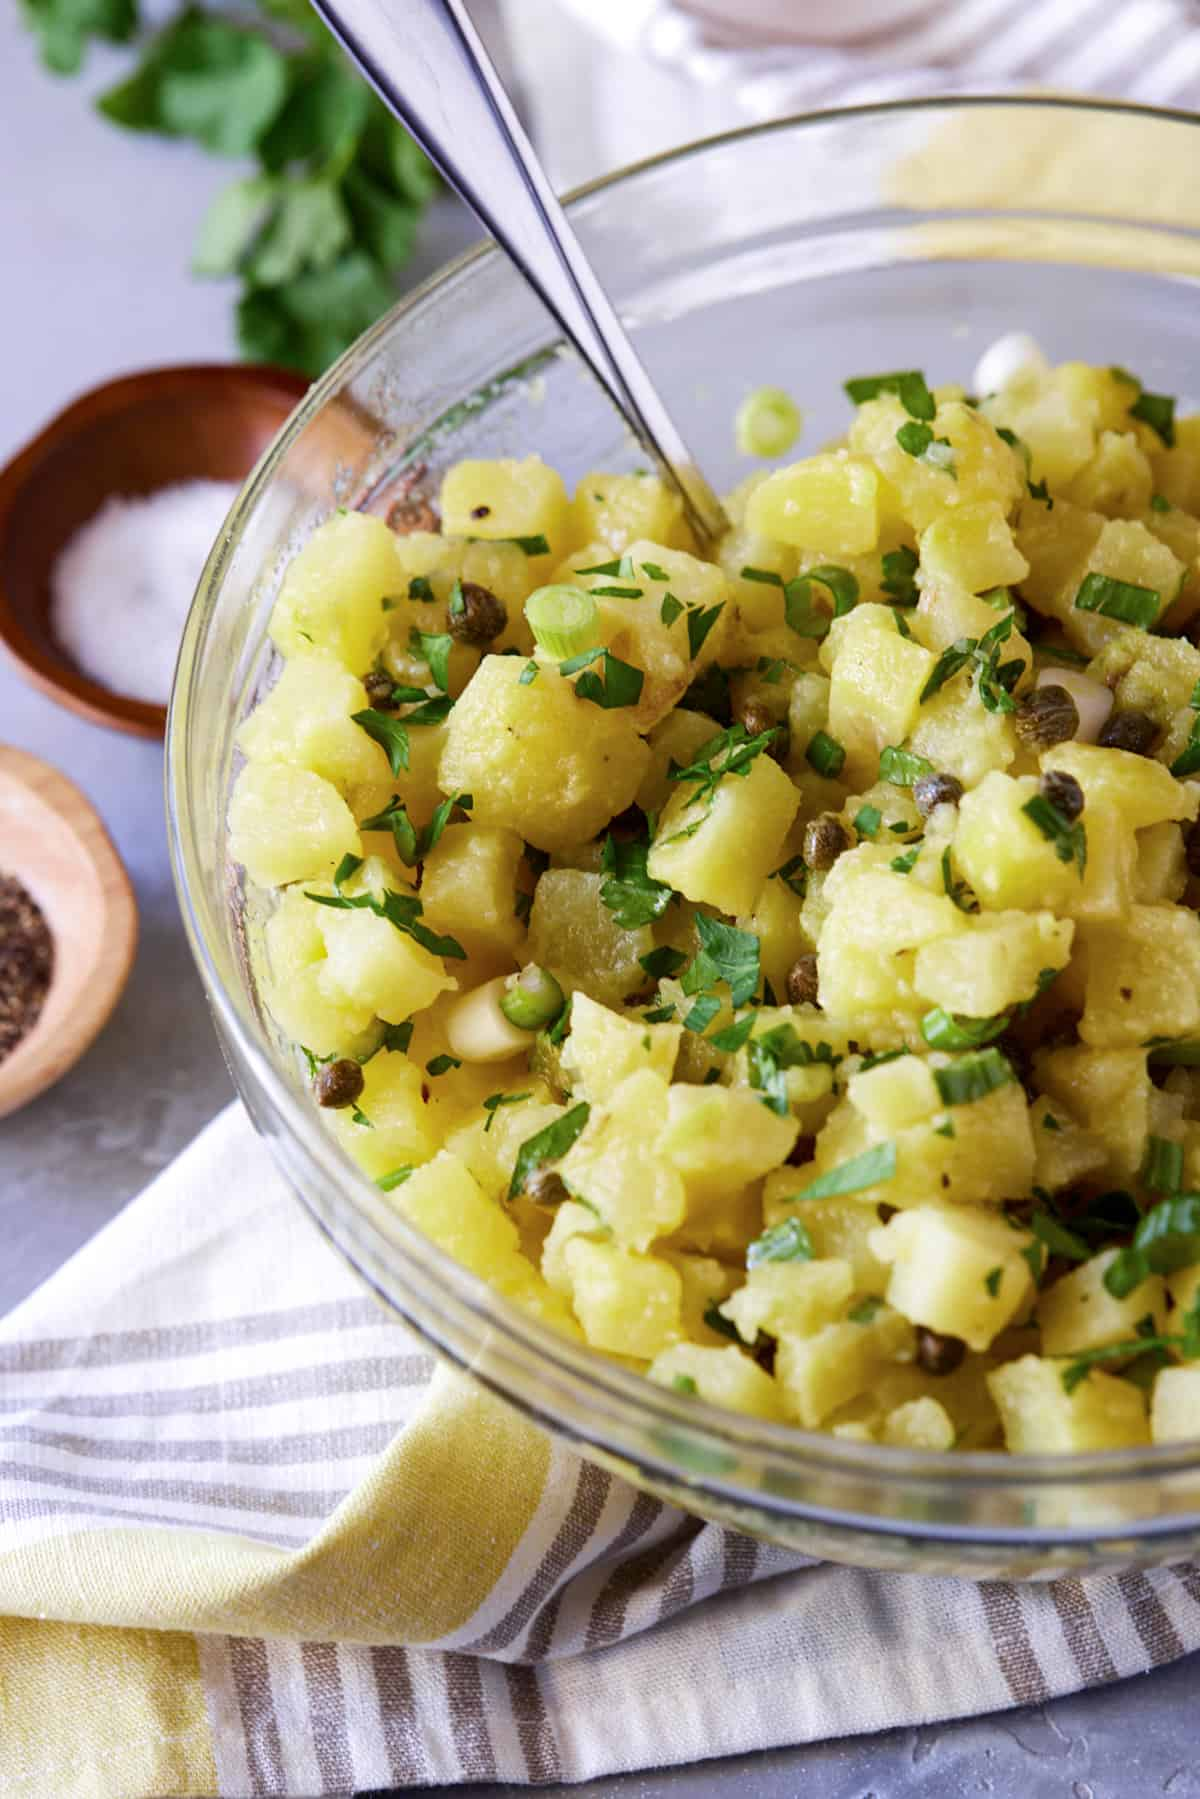 Bowl of potato salad on table with salt and pepper.